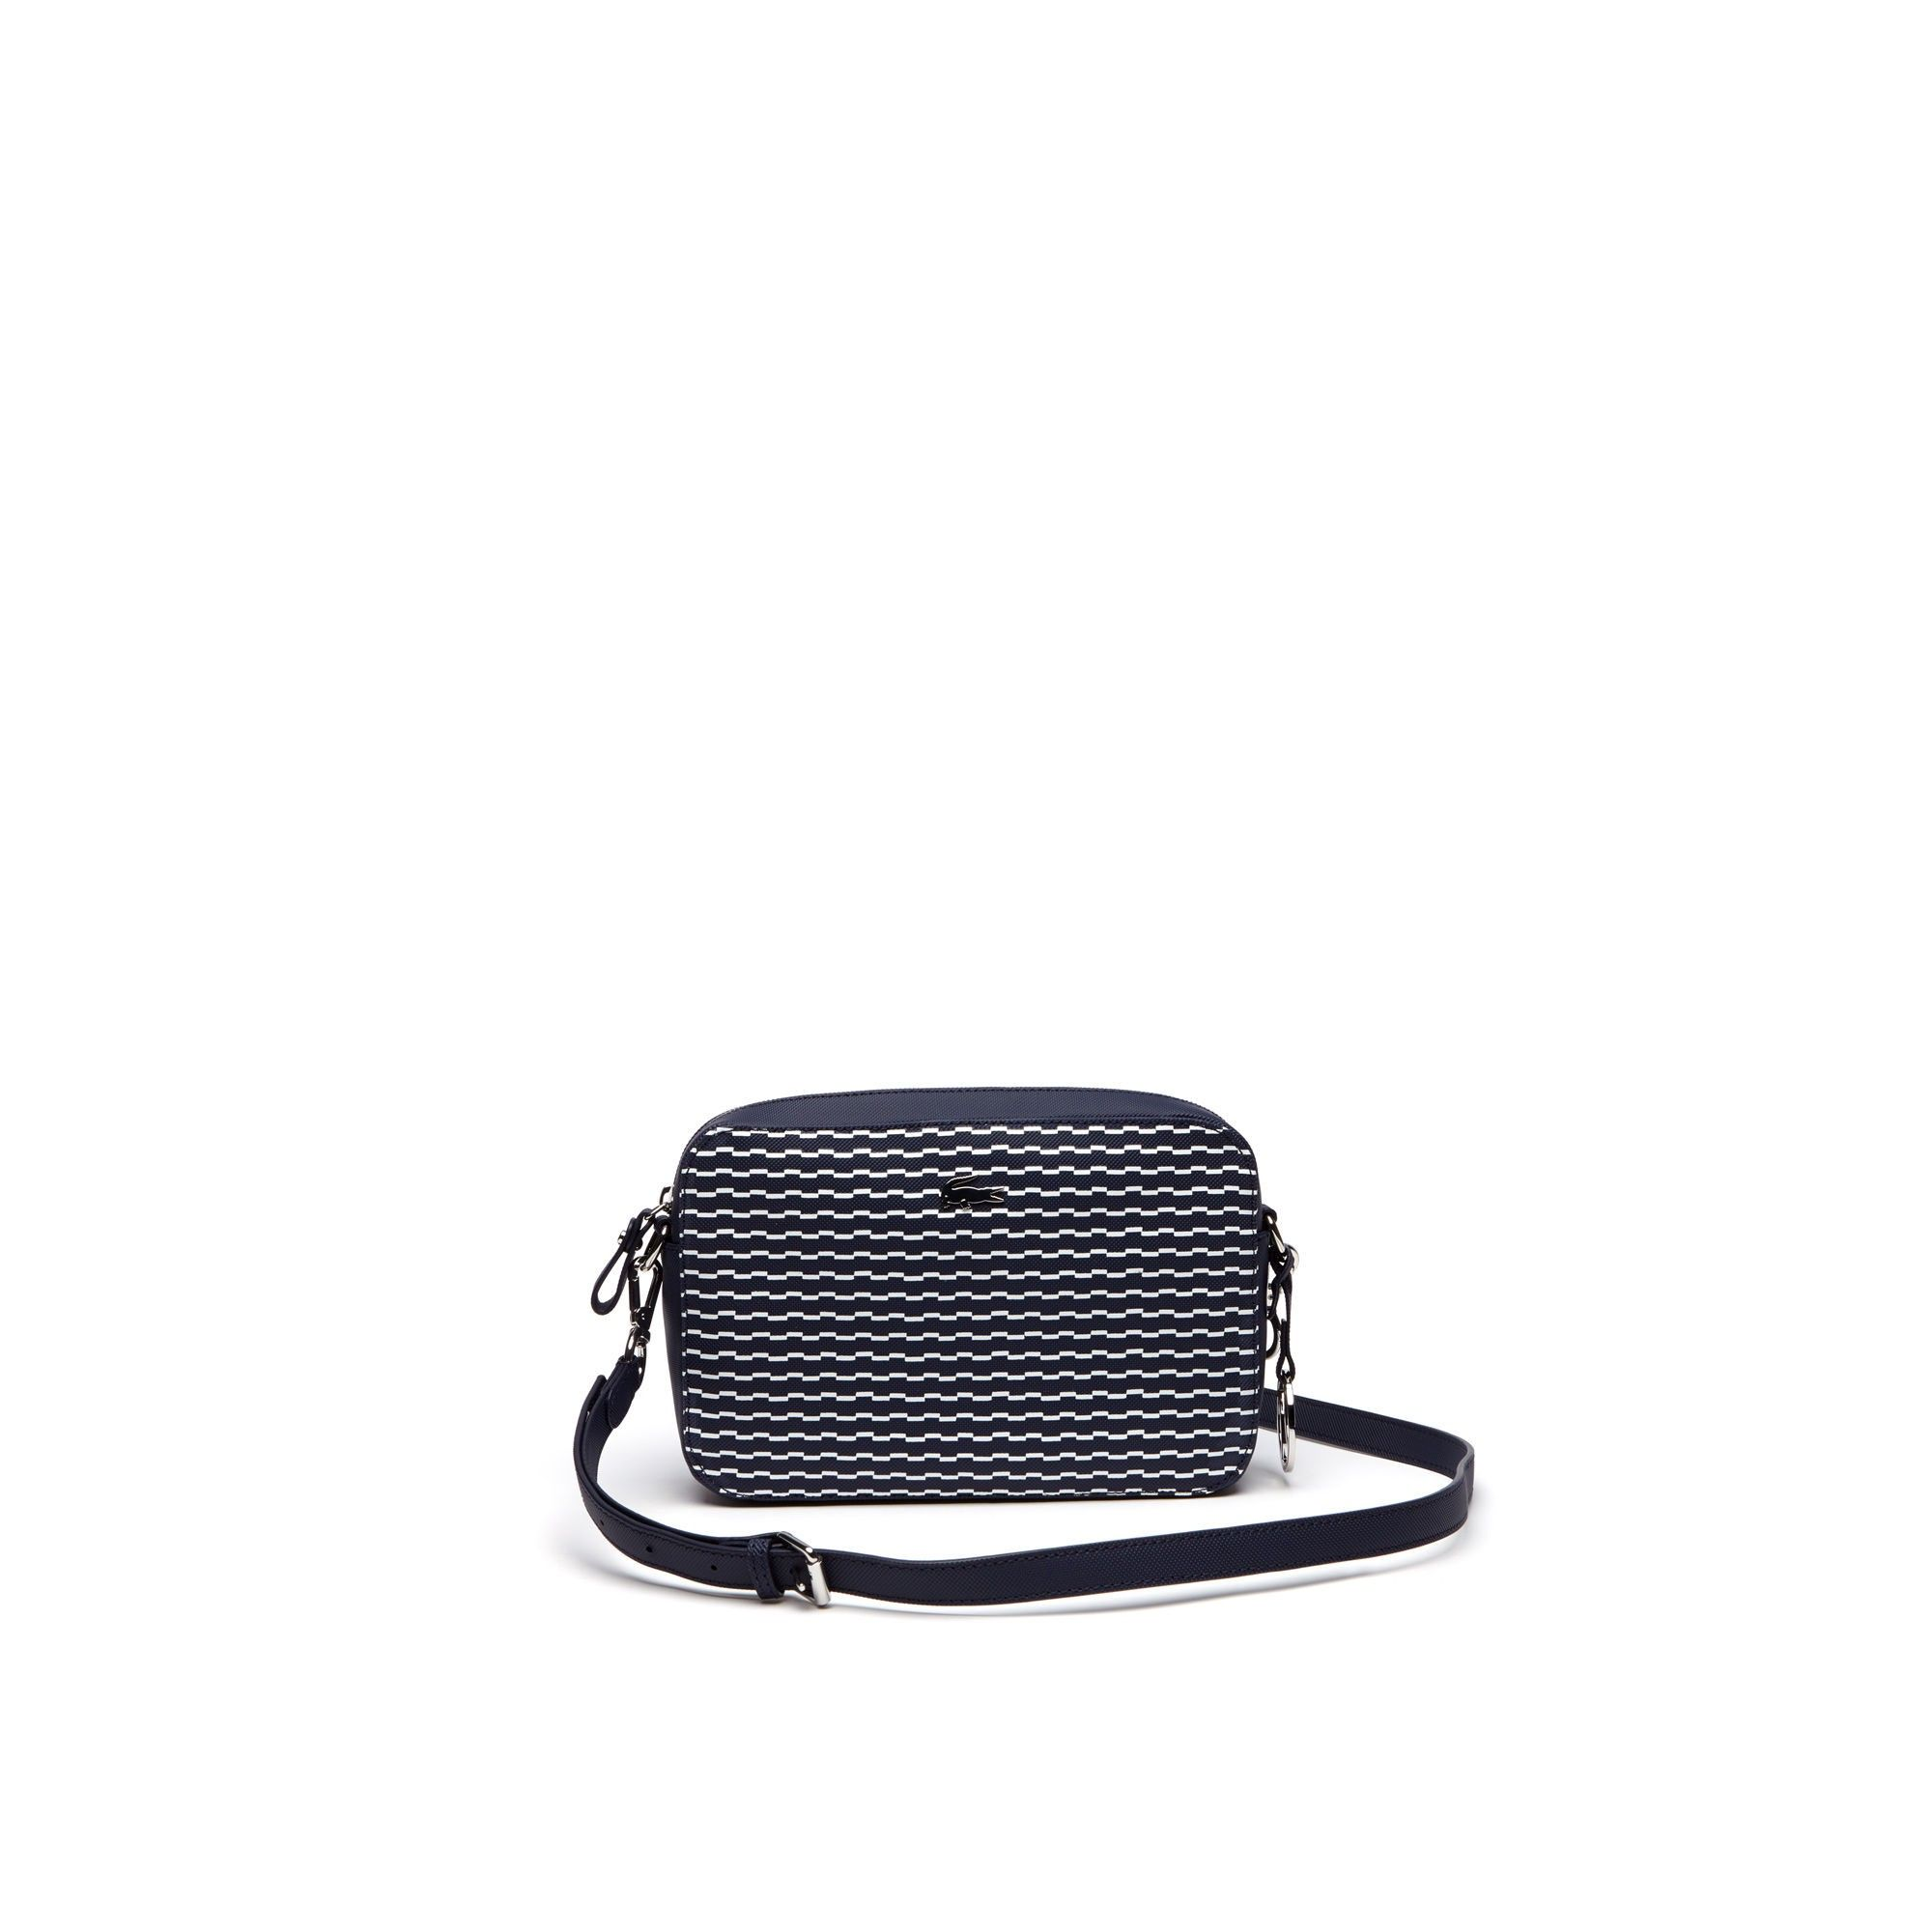 8b92ba0d3 LACOSTE Women S Daily Classic Broken Waves Crossover Bag - Wave Peacoat  Whitewave Peacoat White.  lacoste  bags  shoulder bags  canvas  pvc  charm  ...